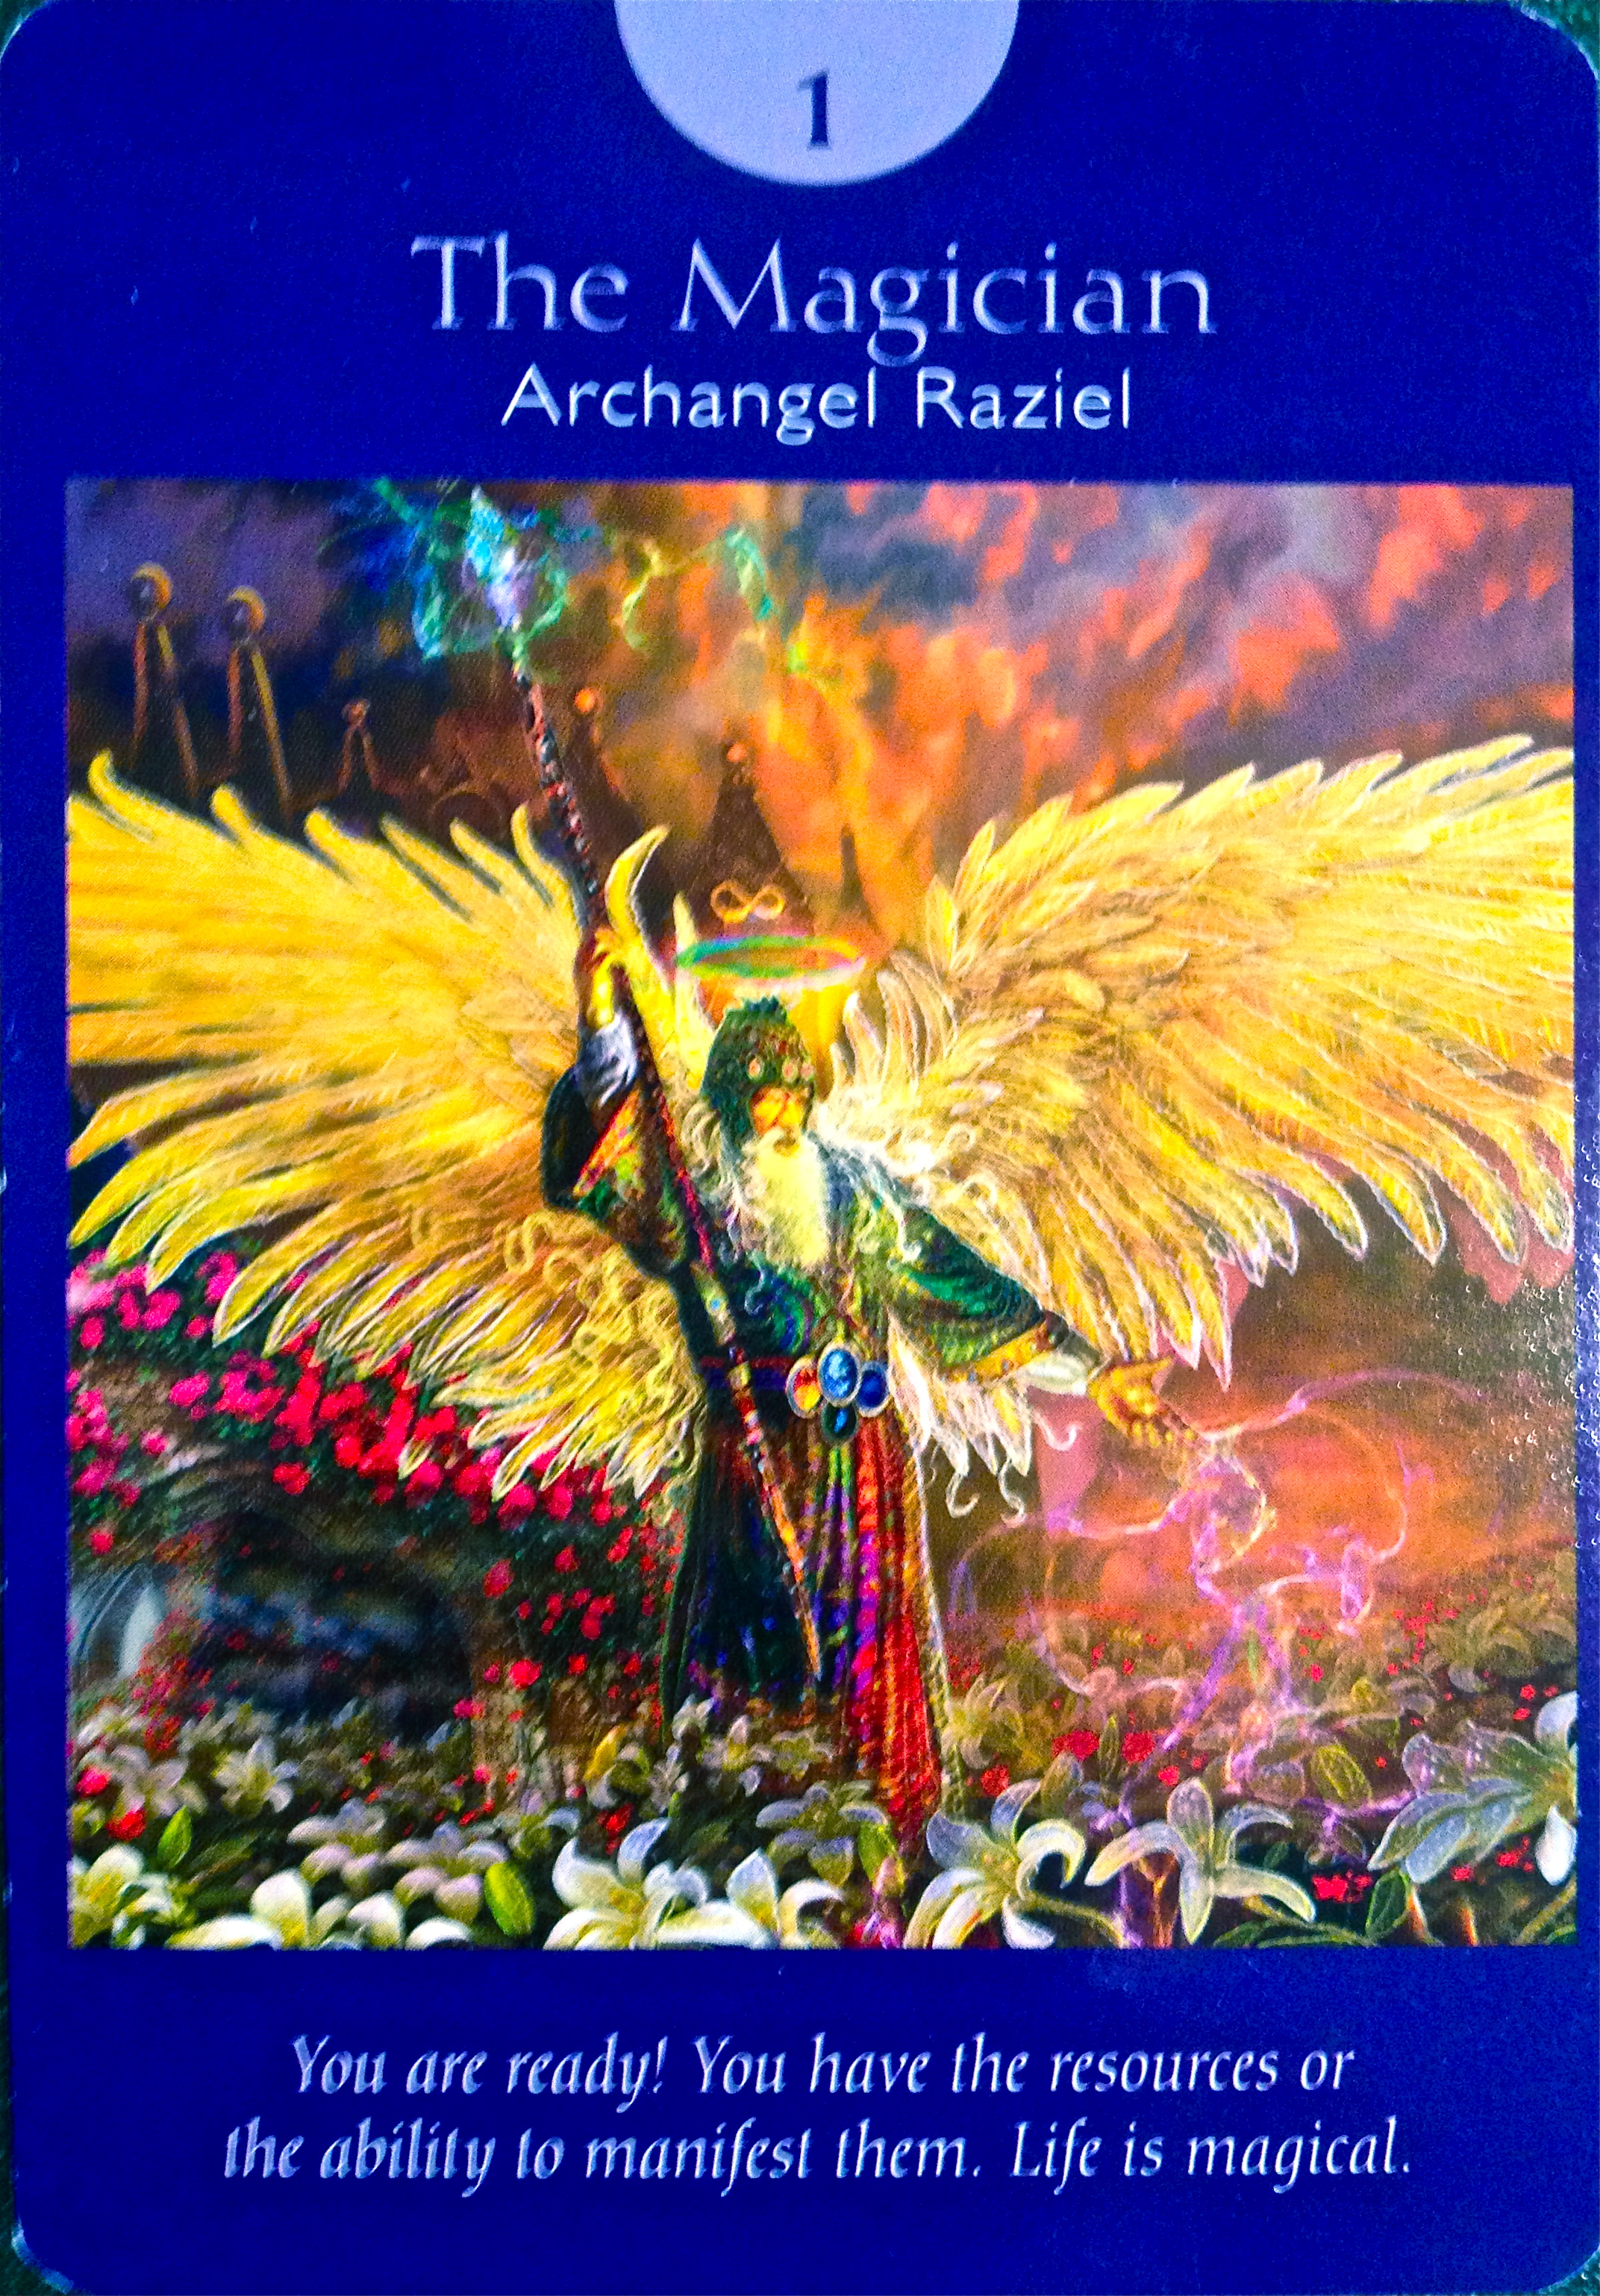 Archangel Oracle Divine Guidance: Archangel Raziel ~ The Magician